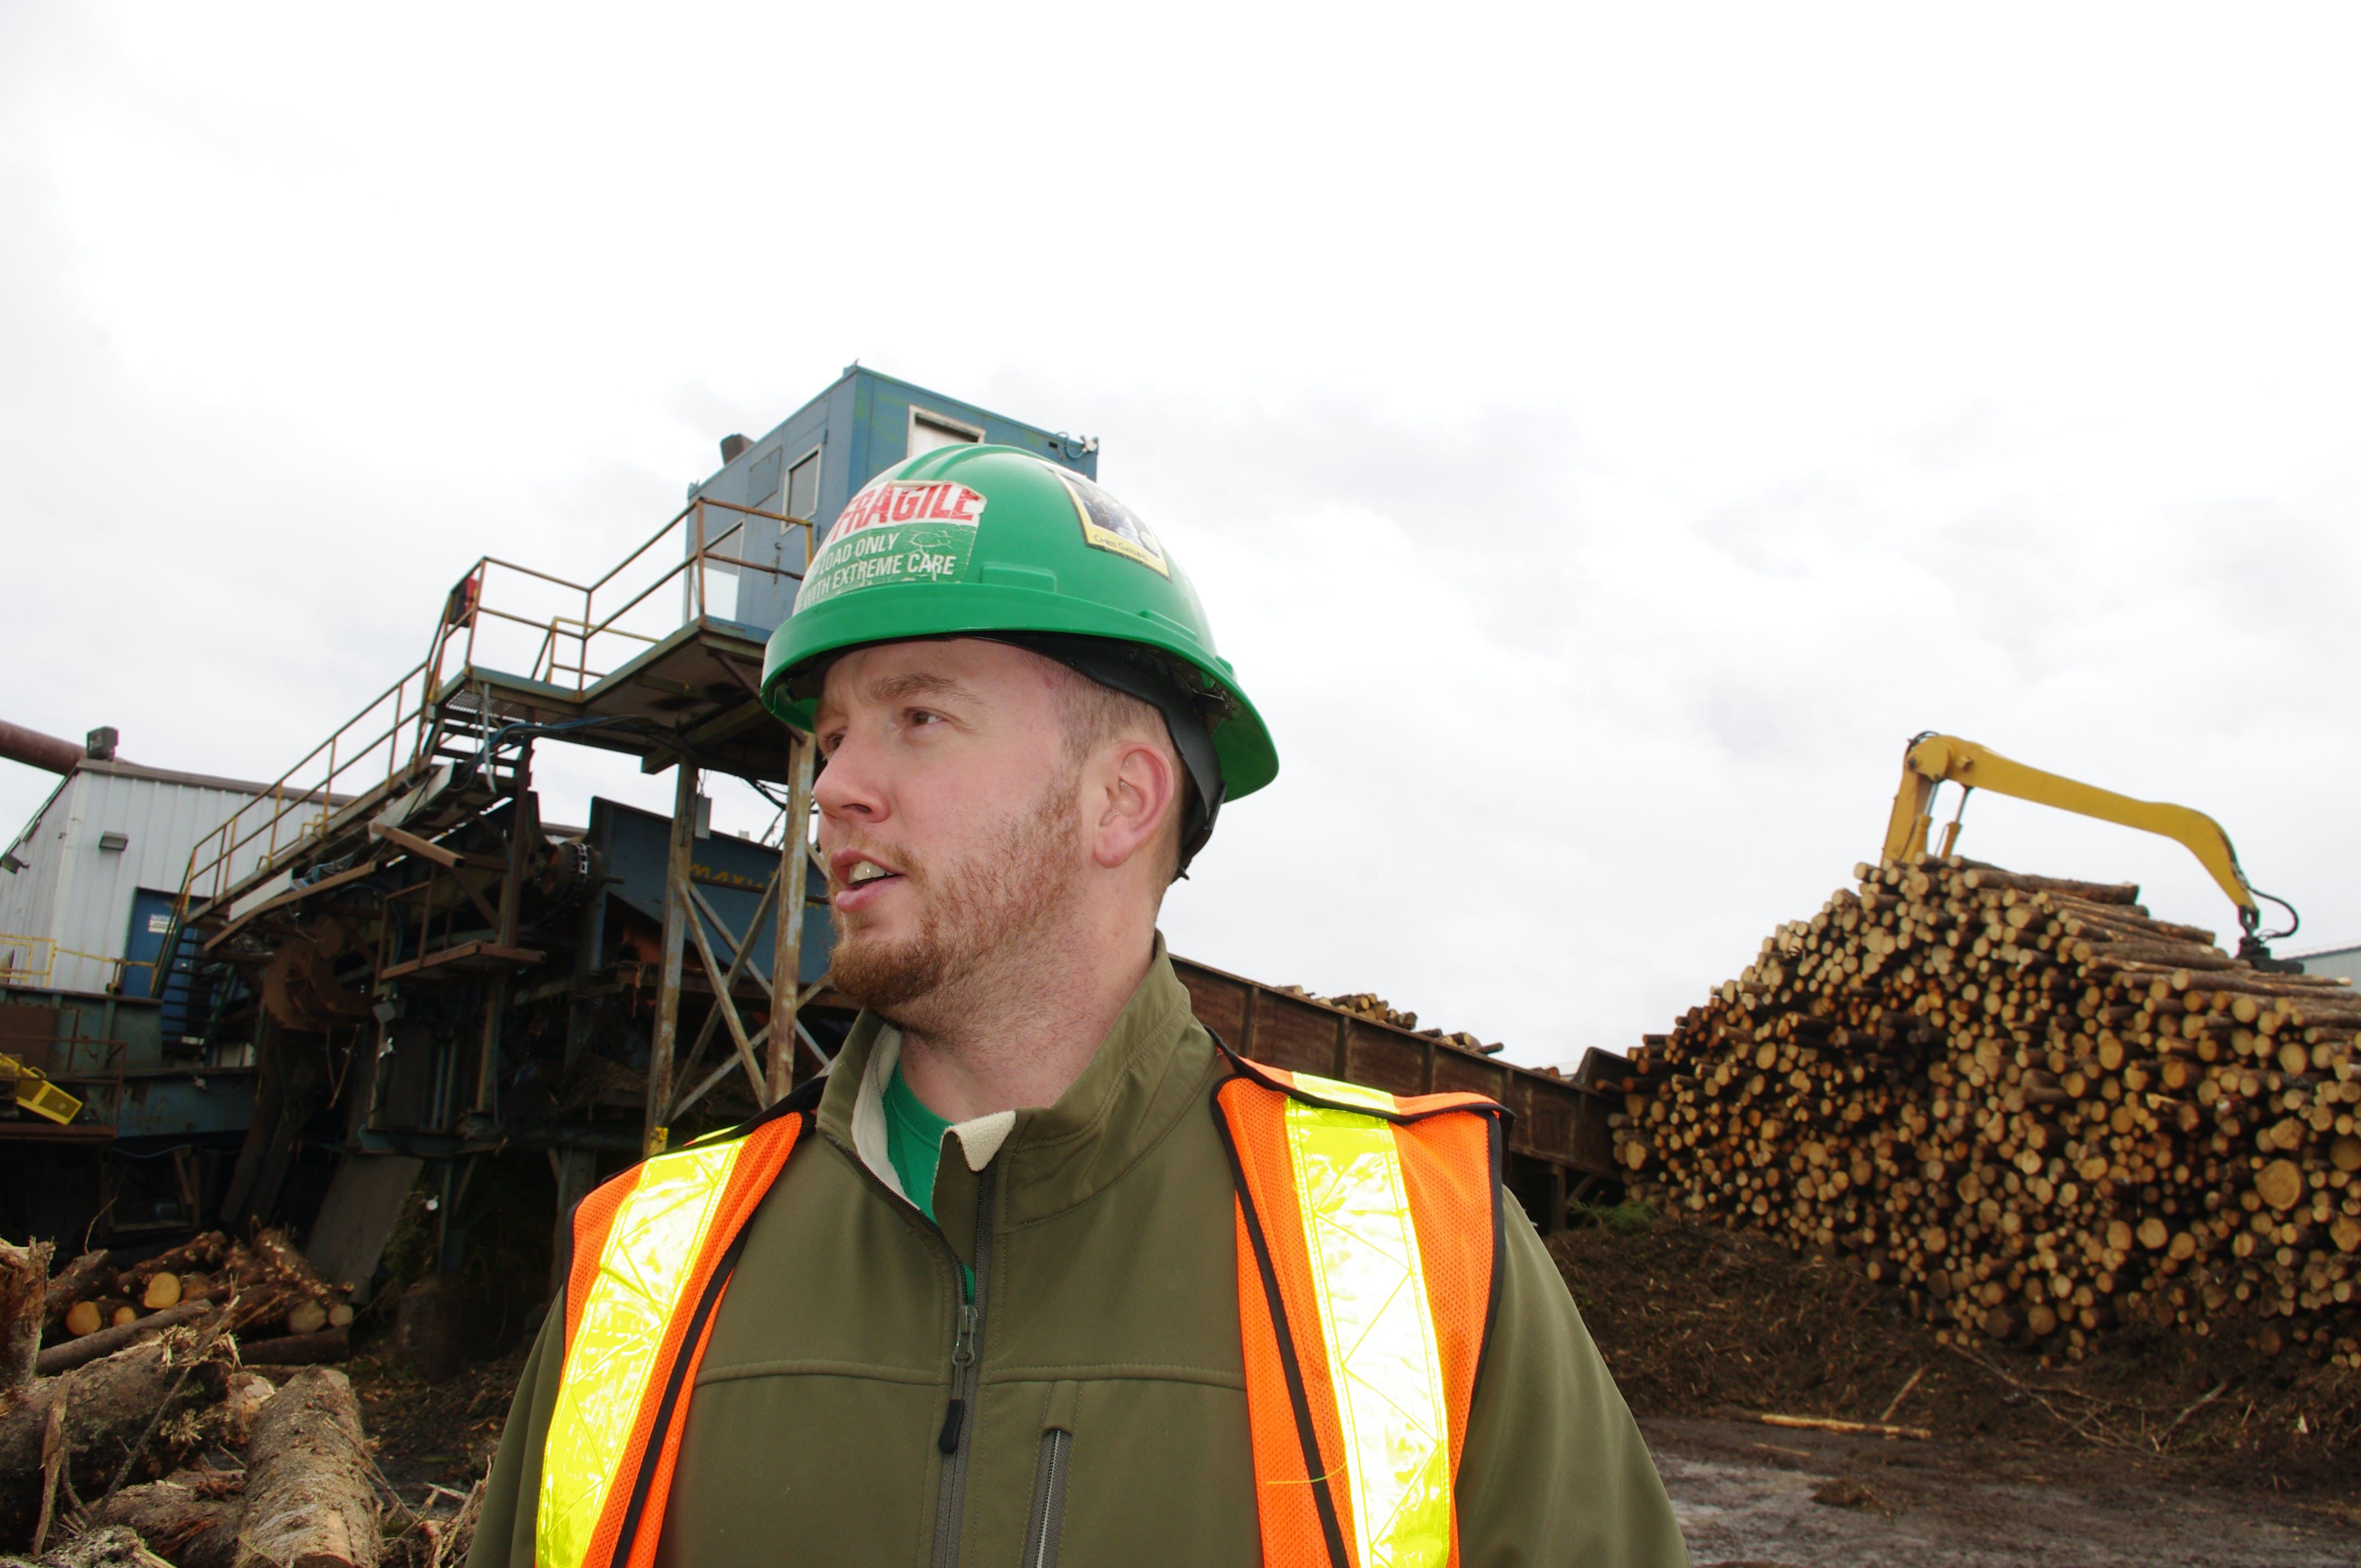 Scotsburn Lumber mill has made a deal to sell woodchips to Port Hawkesbury Paper. The mill used to sell chips to Northern Pulp in Pictou County. In this file photo, a worker is seen at the lumber mill.